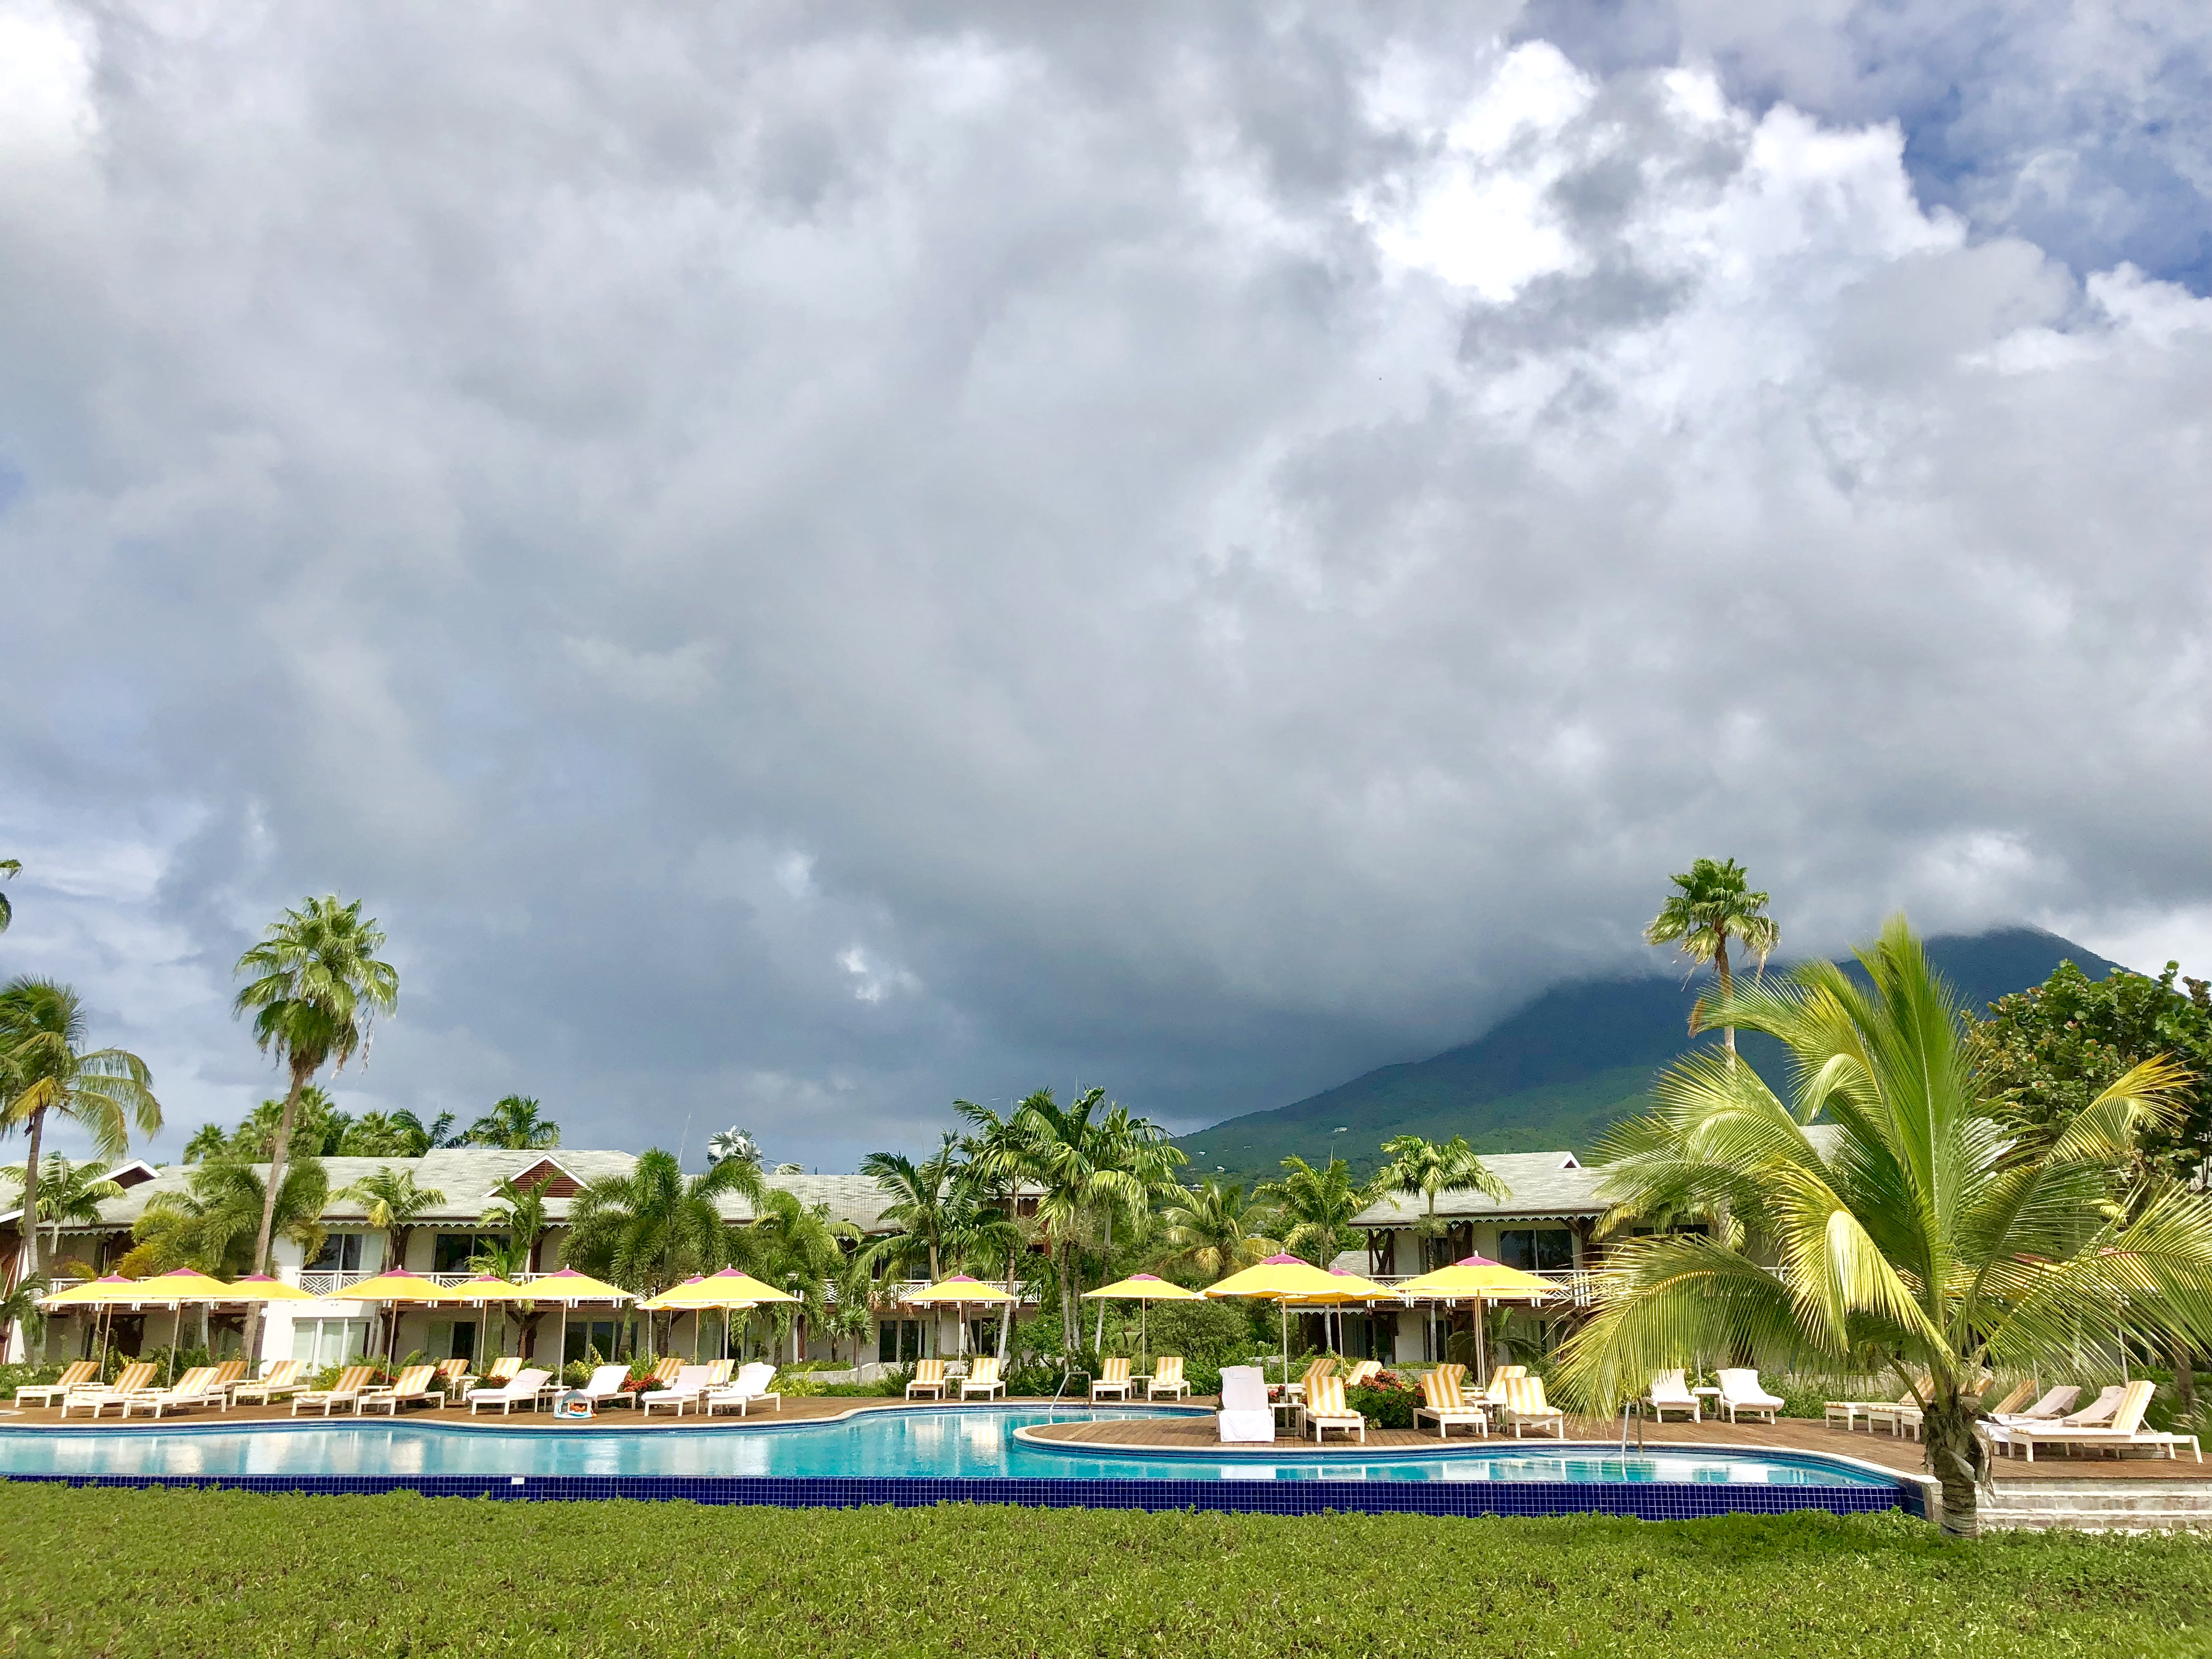 four seasons, four seasons nevis, st. kitts, nevis, caribbean, resort, hotel, ocean, pool